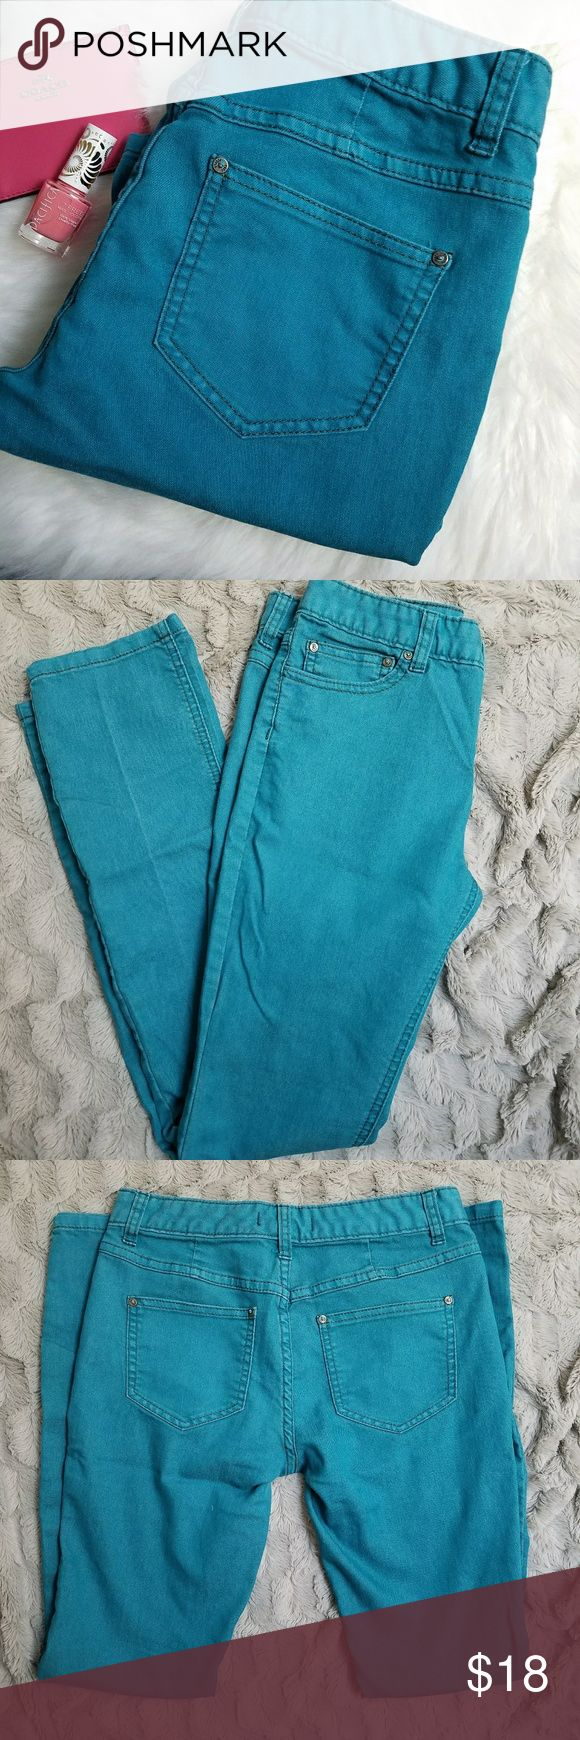 Free People Teal Skinny Jeans Size 26 Skinny jeans by Free people. Size 26. Small light pink stain on the waist band. Inseam is 31 inches, rise is 8.5 inches and waist is 14.5 inches. (A76) Free People Jeans Skinny